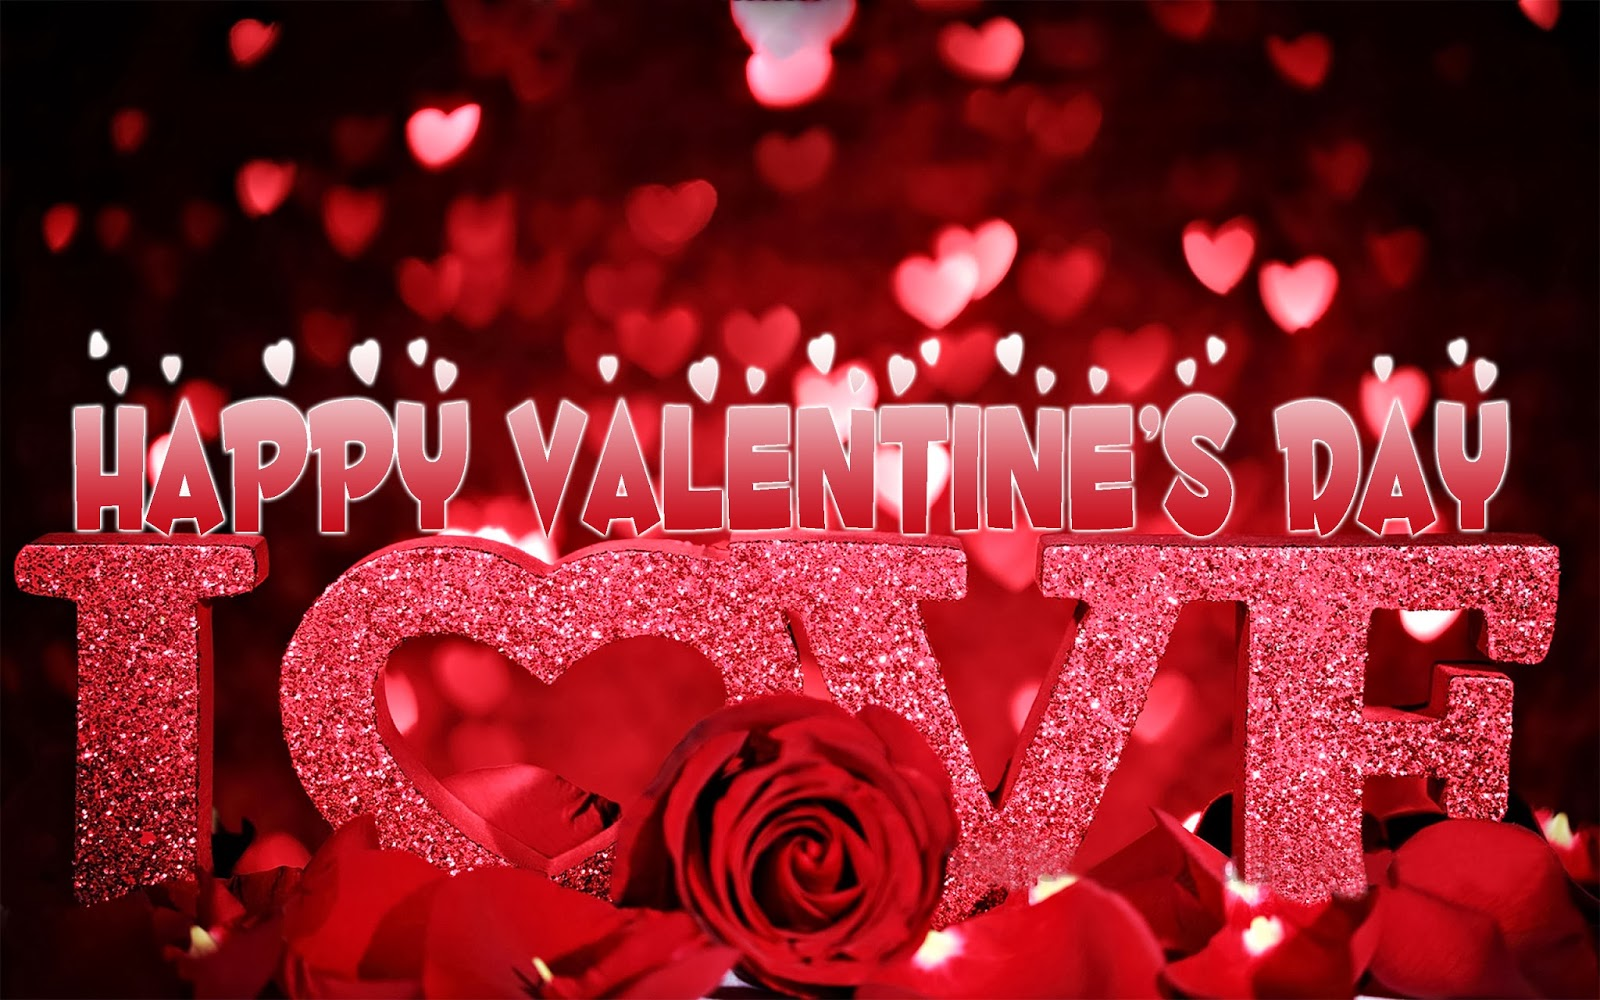 Happy-Valentines-Day-Love-Wishes-Wallpaper-Image-HD-Wide